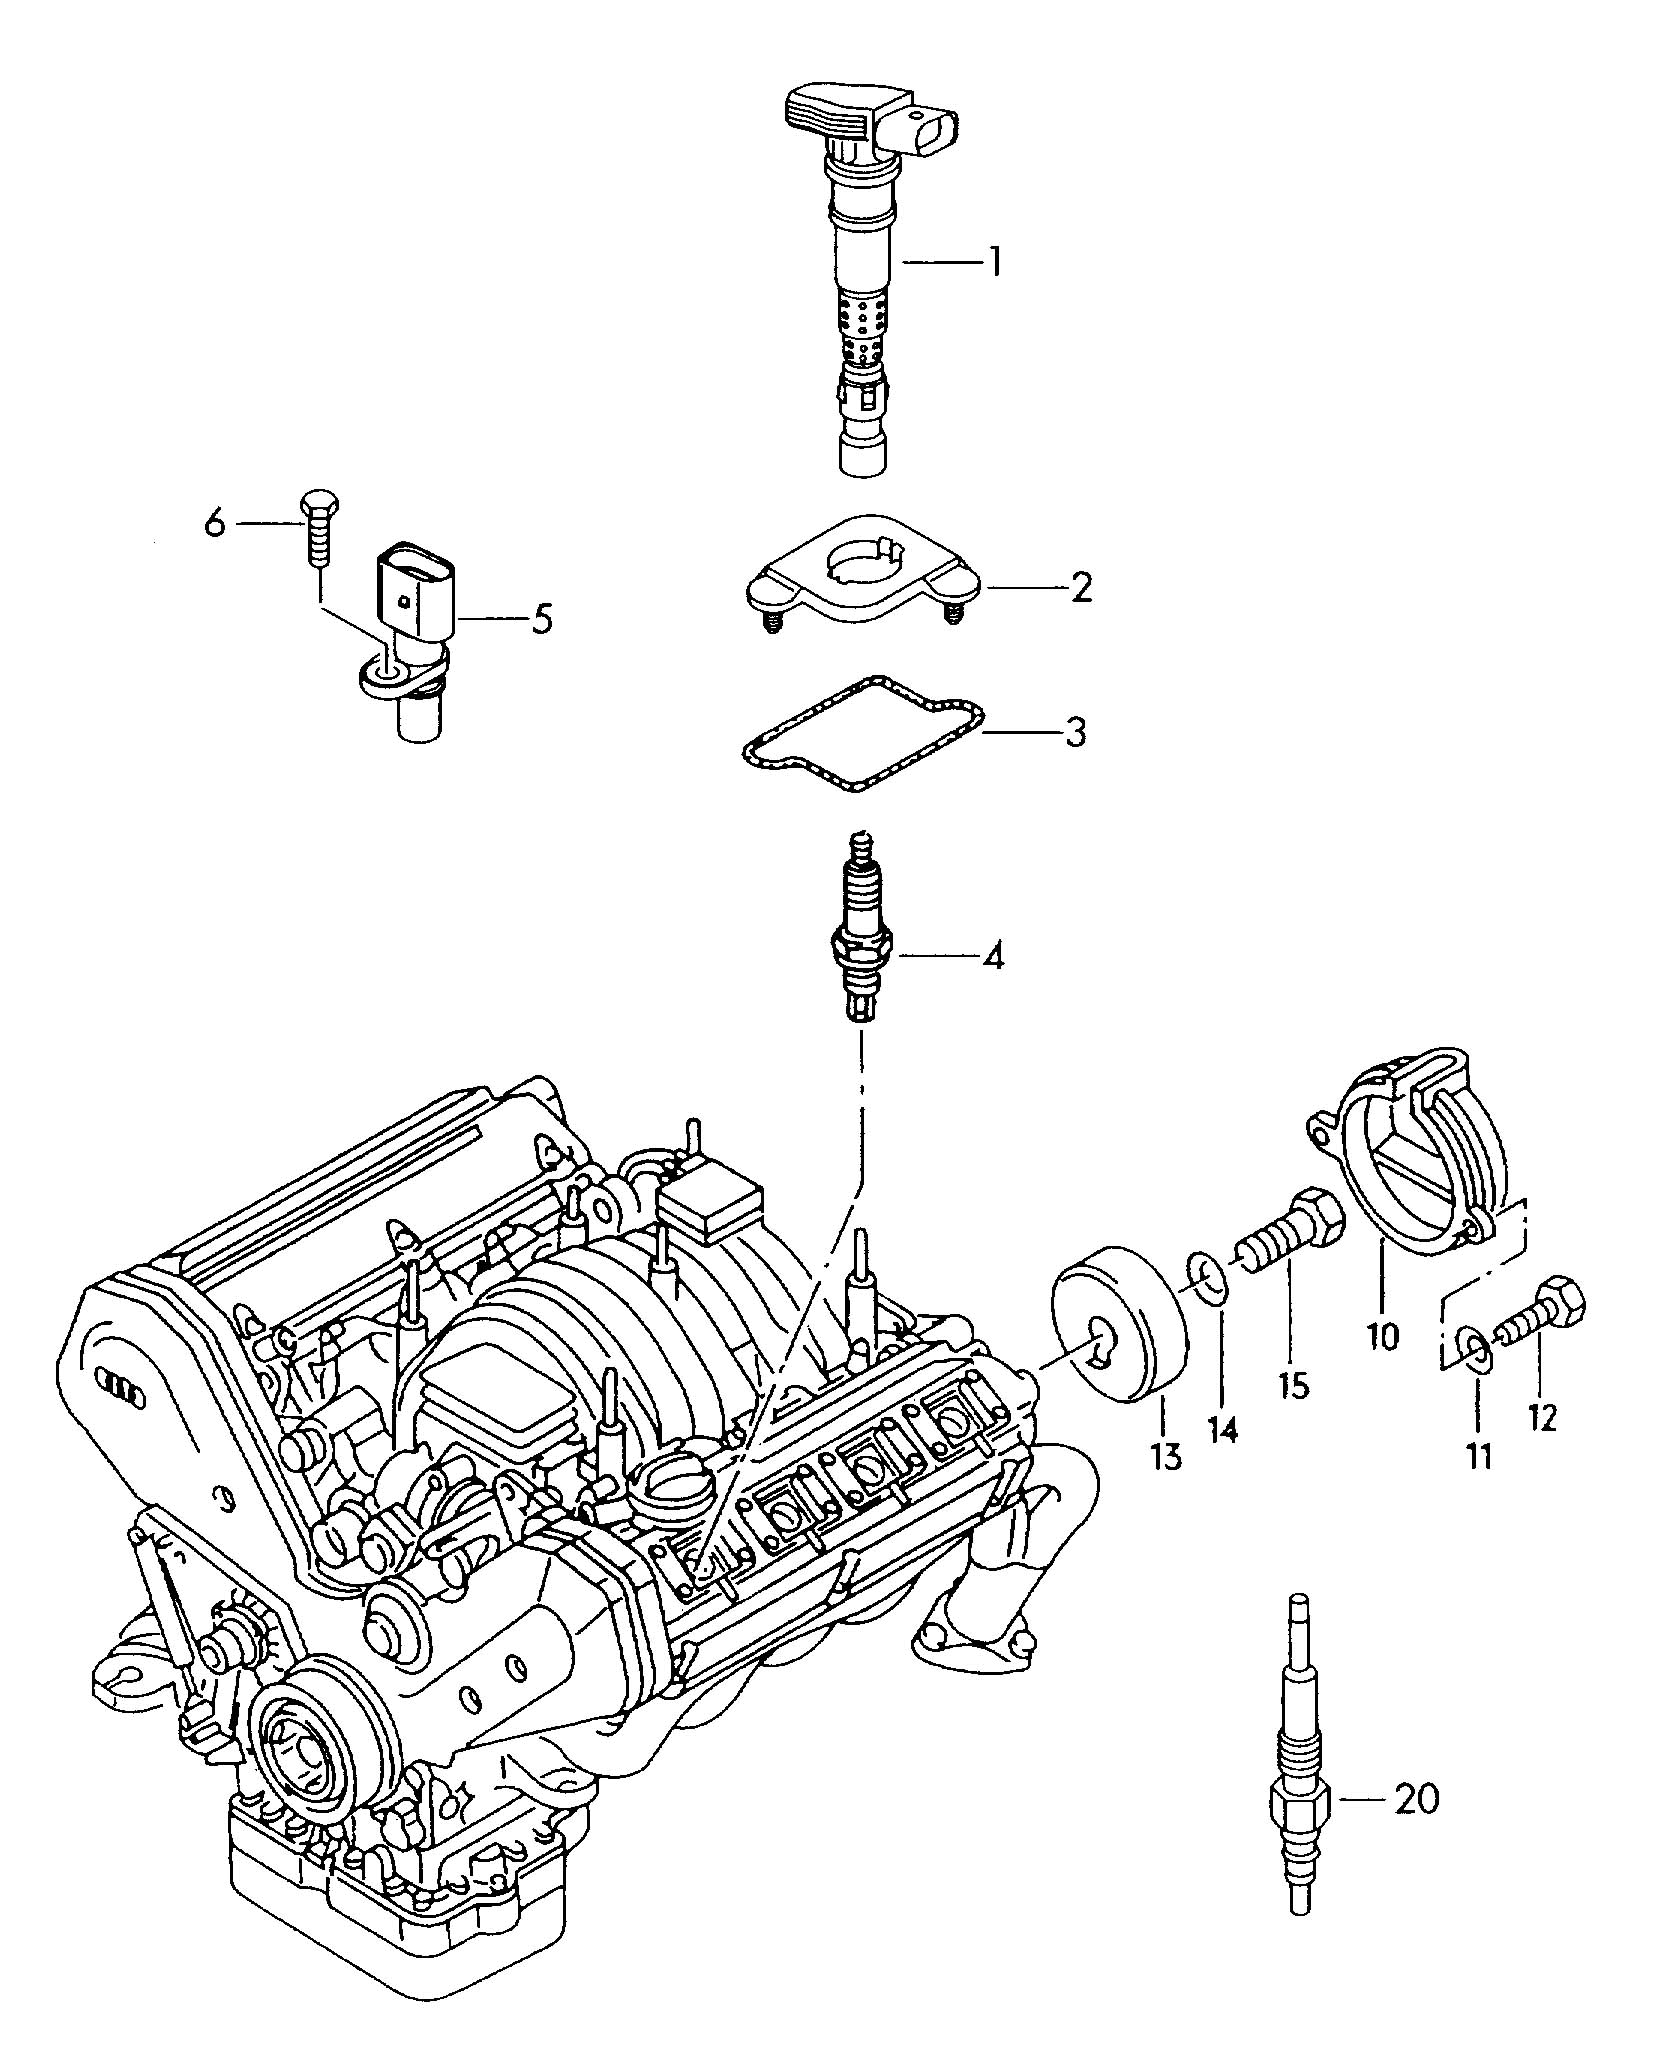 Volkswagen Touareg Ignition Coil With Spark Plug Connector